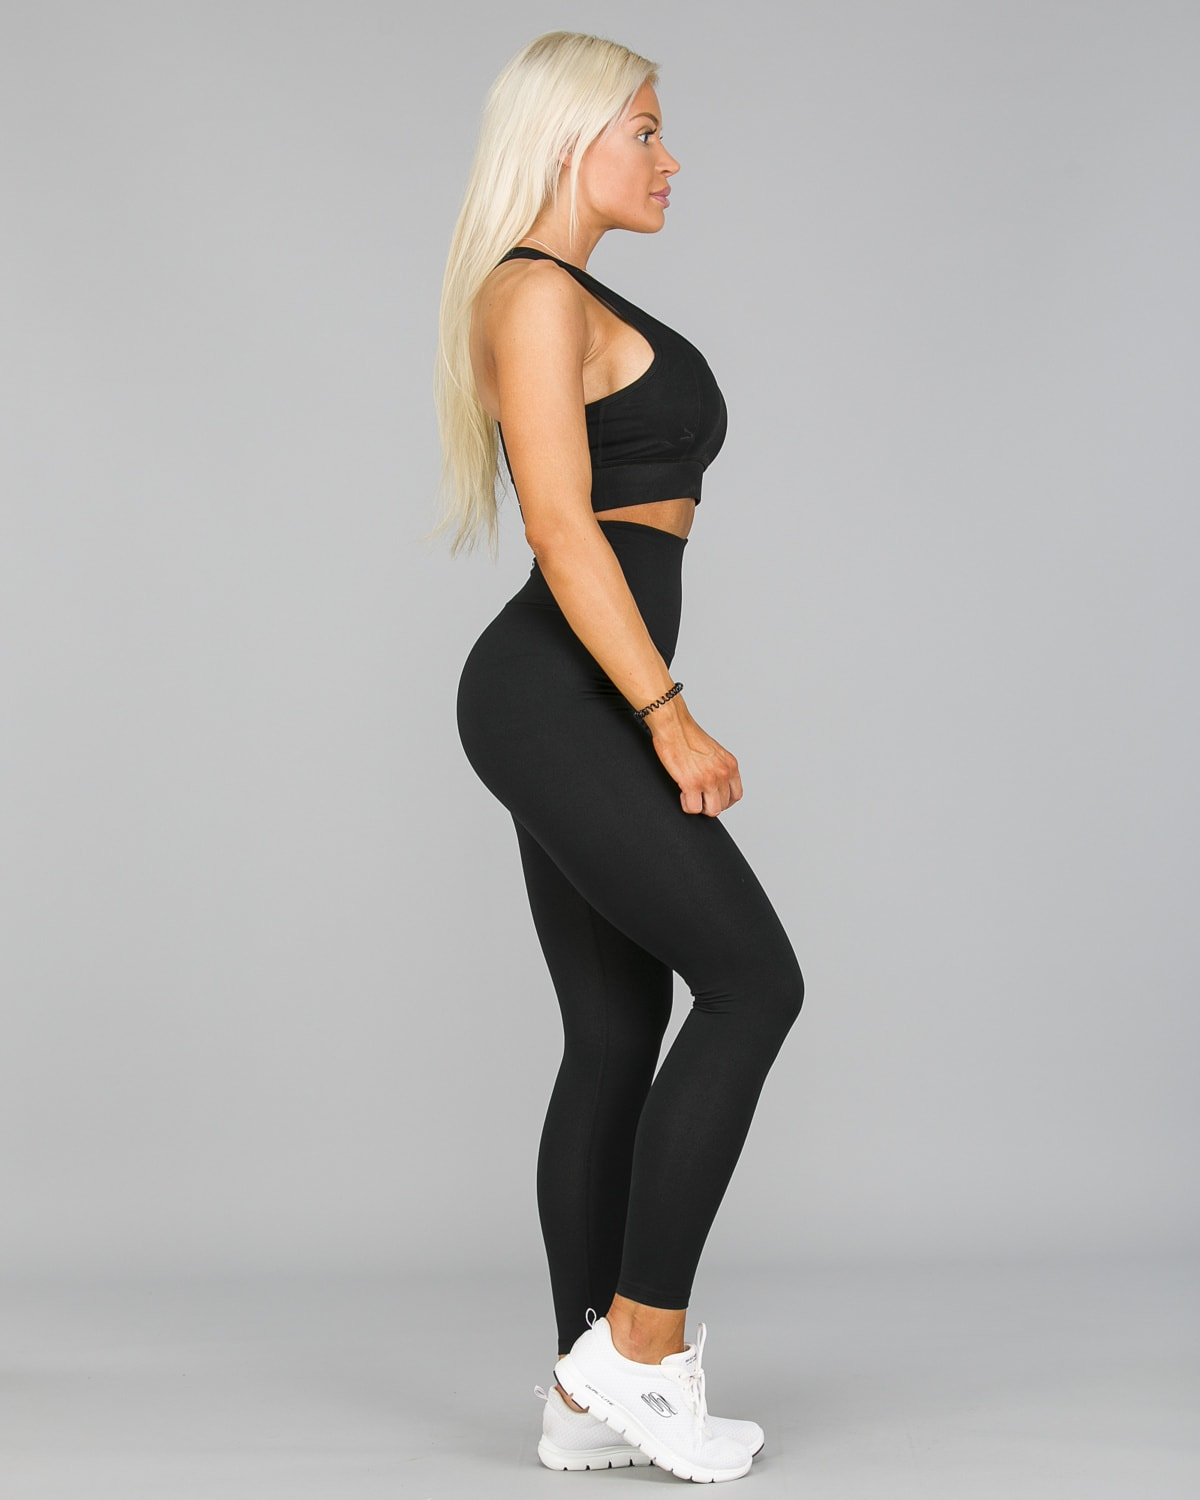 Squat Wolf – Hera Leggings – Black5